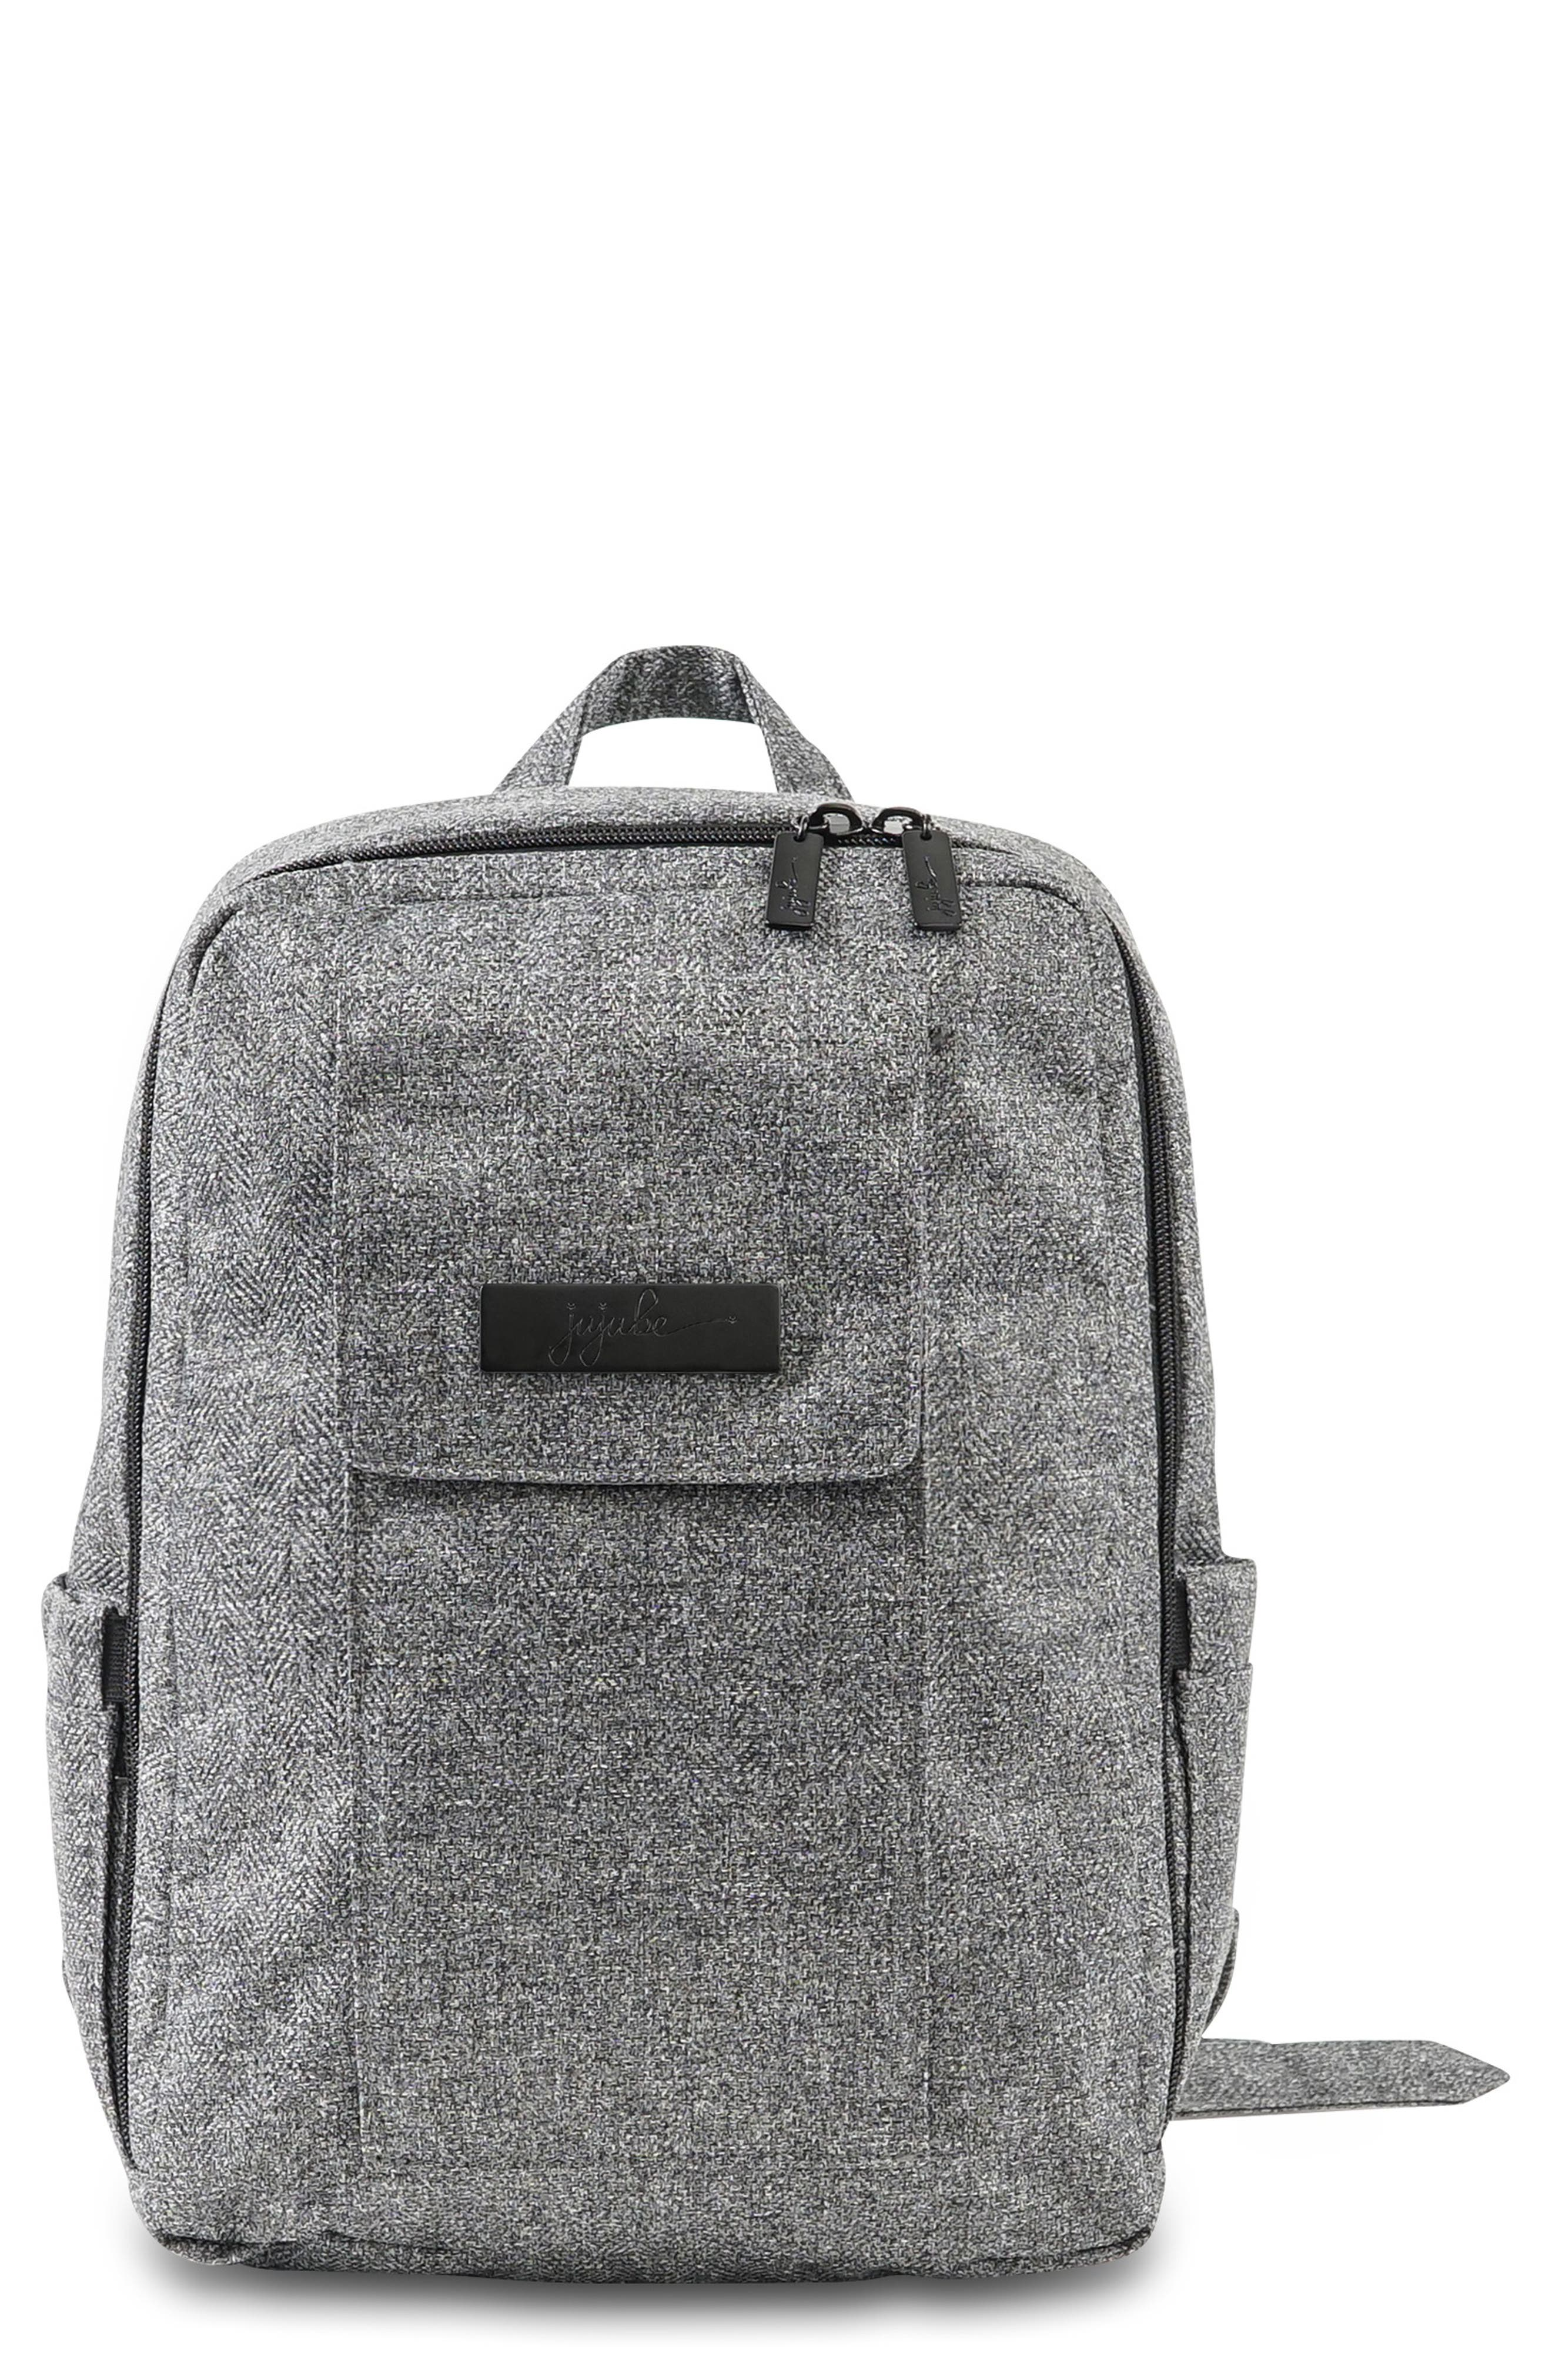 'Mini Be - Onyx Collection' Backpack,                         Main,                         color, GRAY MATTER